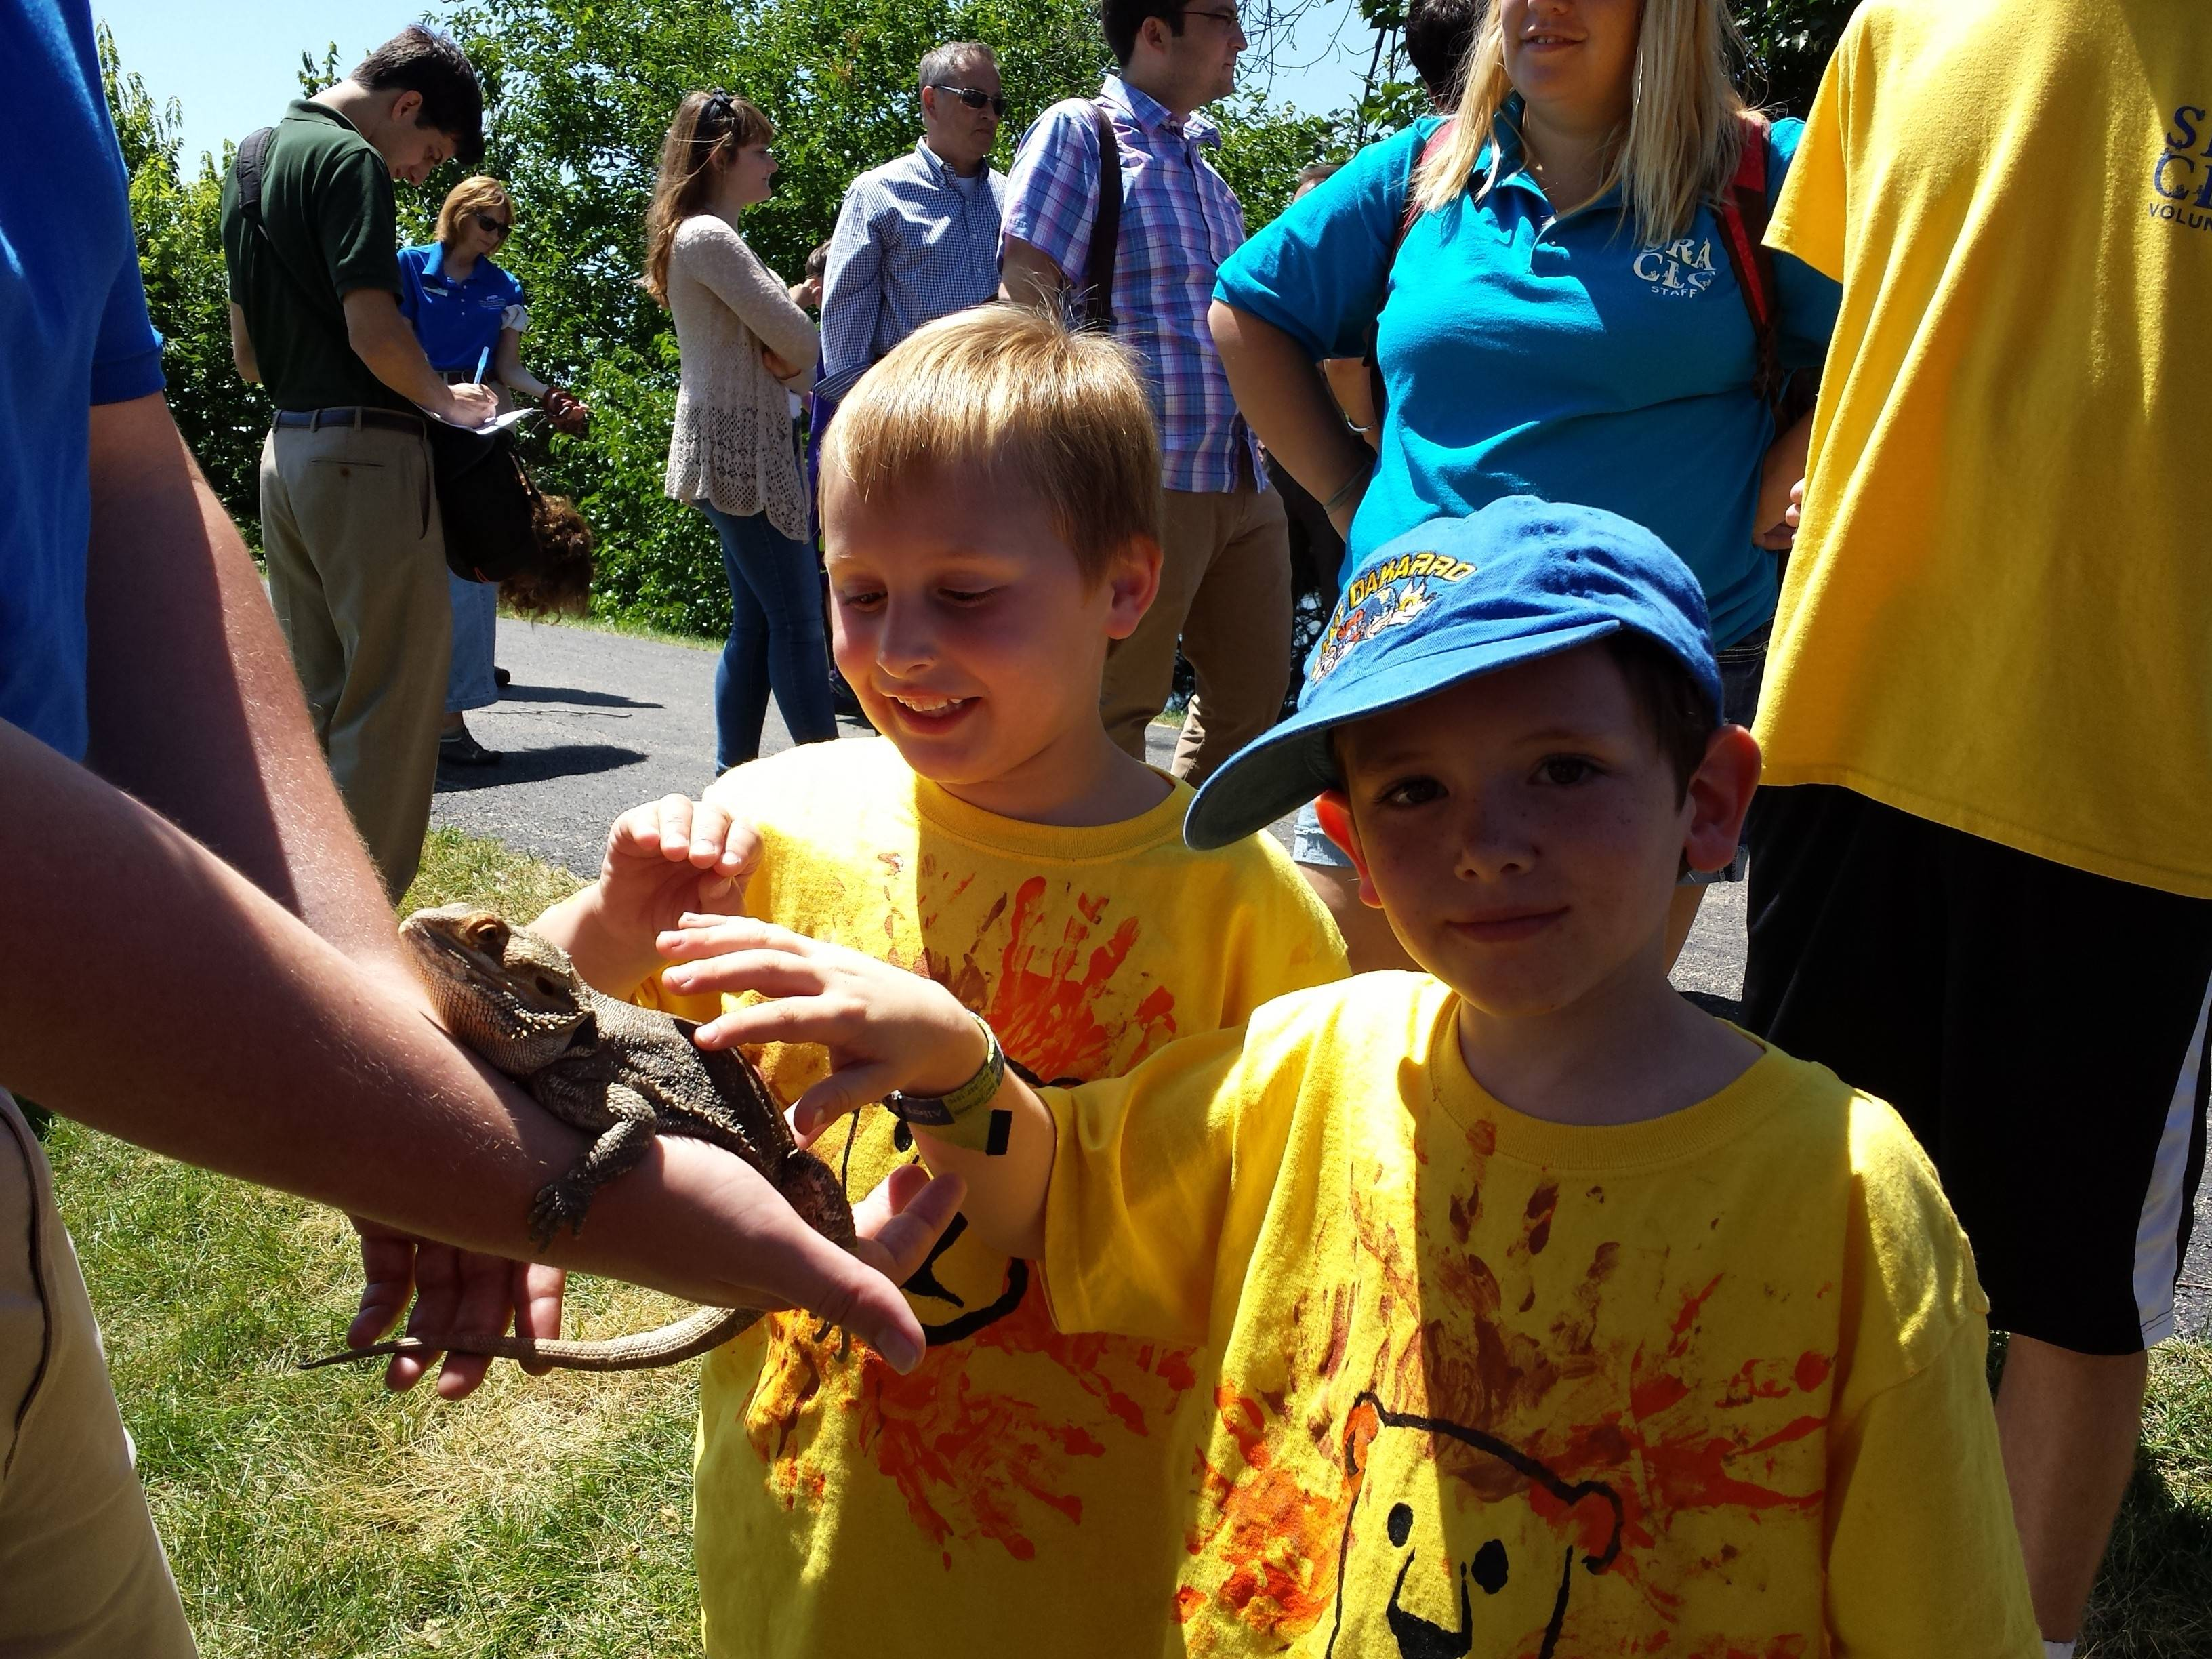 A traveling exhibit of live animals from Brookfield Zoo was one of the many attractions for SRACLC campers at the Special Recreation Association of Central Lake County's 24th Annual Family Day and Fishing Derby.